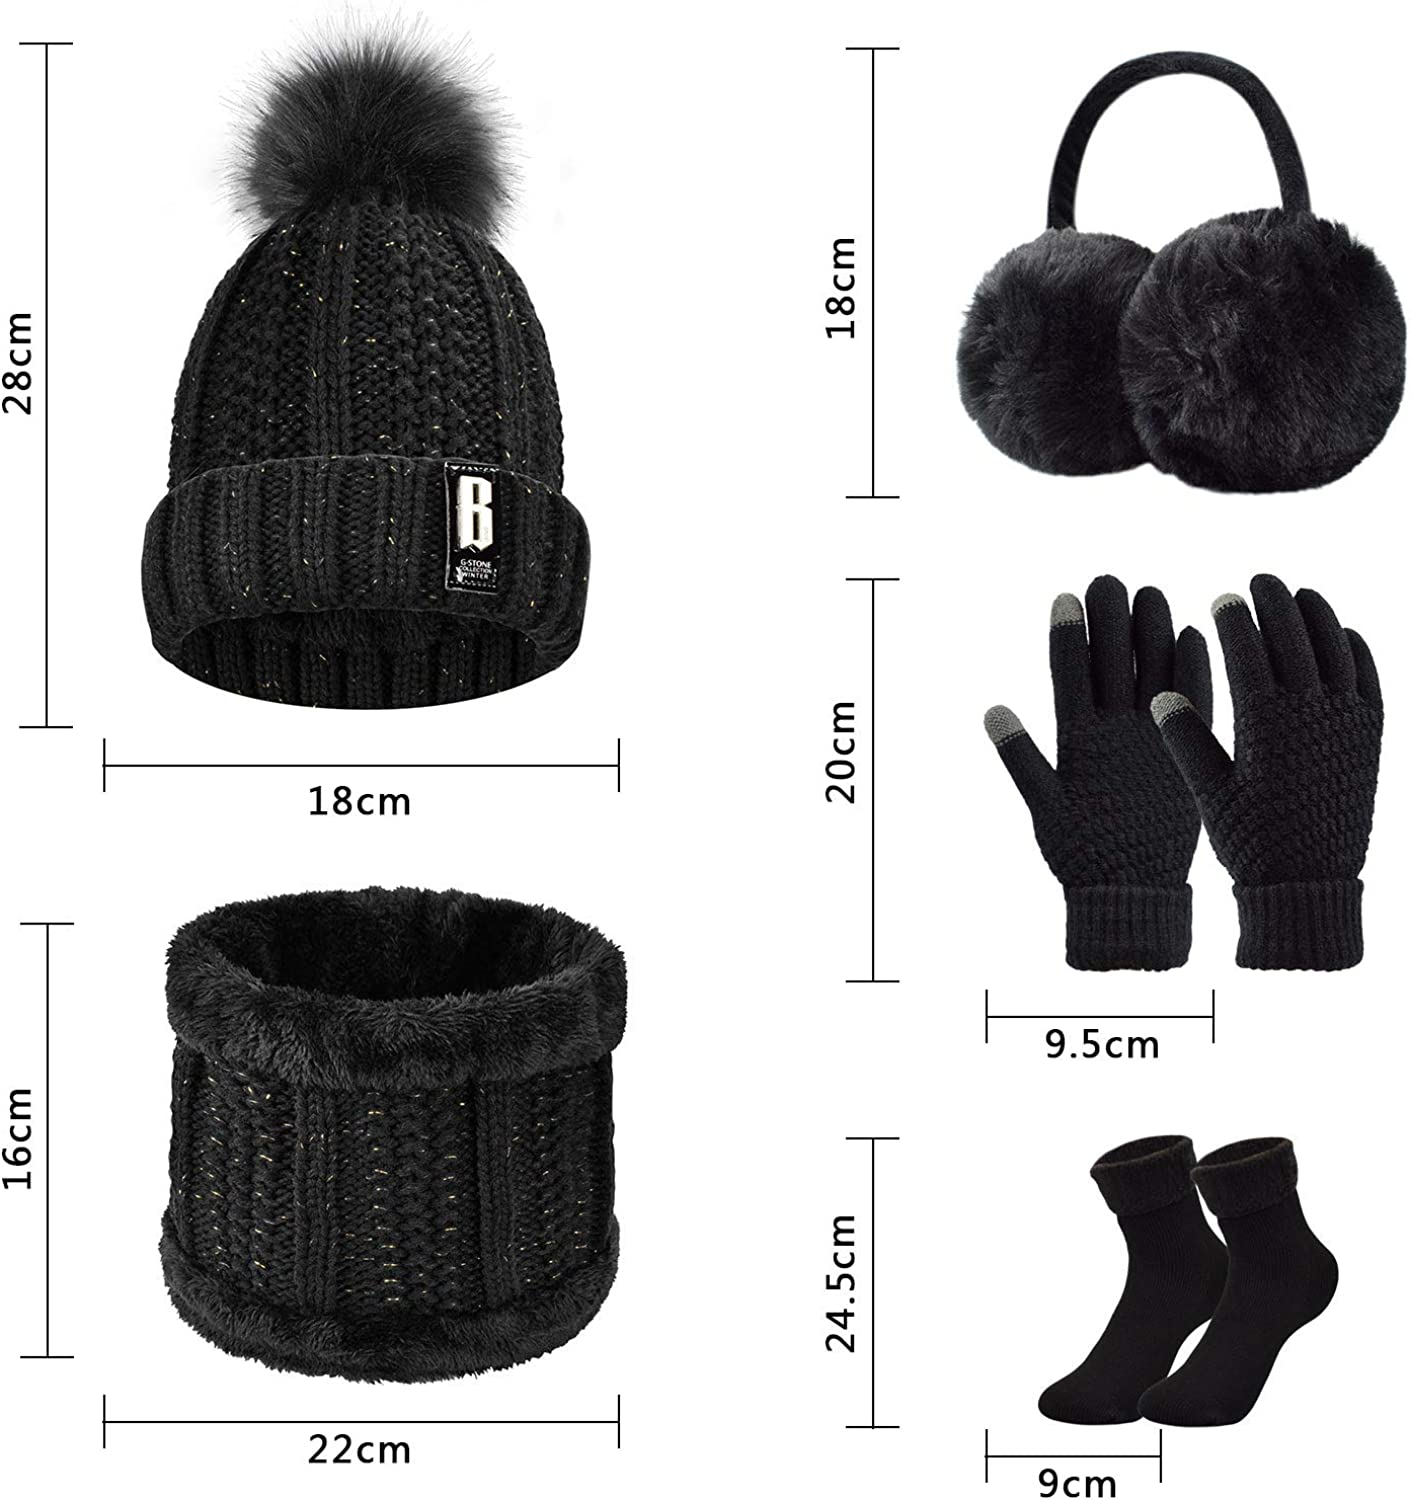 hats etc x Medium Size knitting bag ideal for projects such as socks scarves gloves